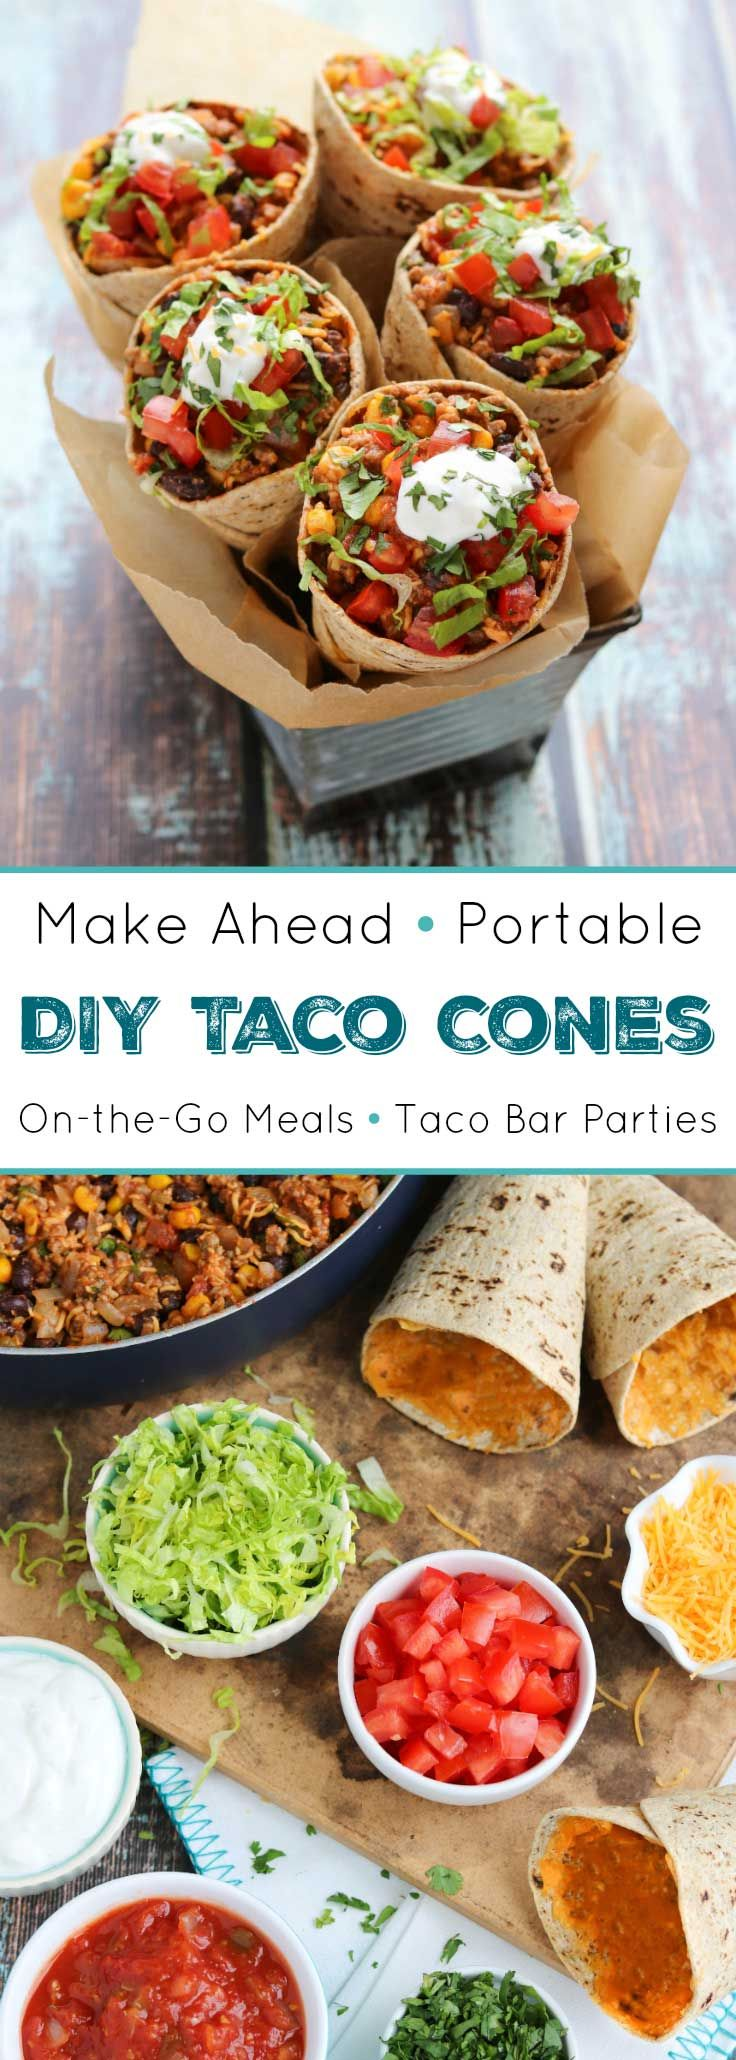 Great for taco bars or on-the-go, busy weeknights! Fun, make-ahead, portable tacos! These Taco Cones are healthier than traditional Walking Tacos recipes and even more fun! Our DIY Ta-Cones are full o (Vegan Tacos Tuesday)